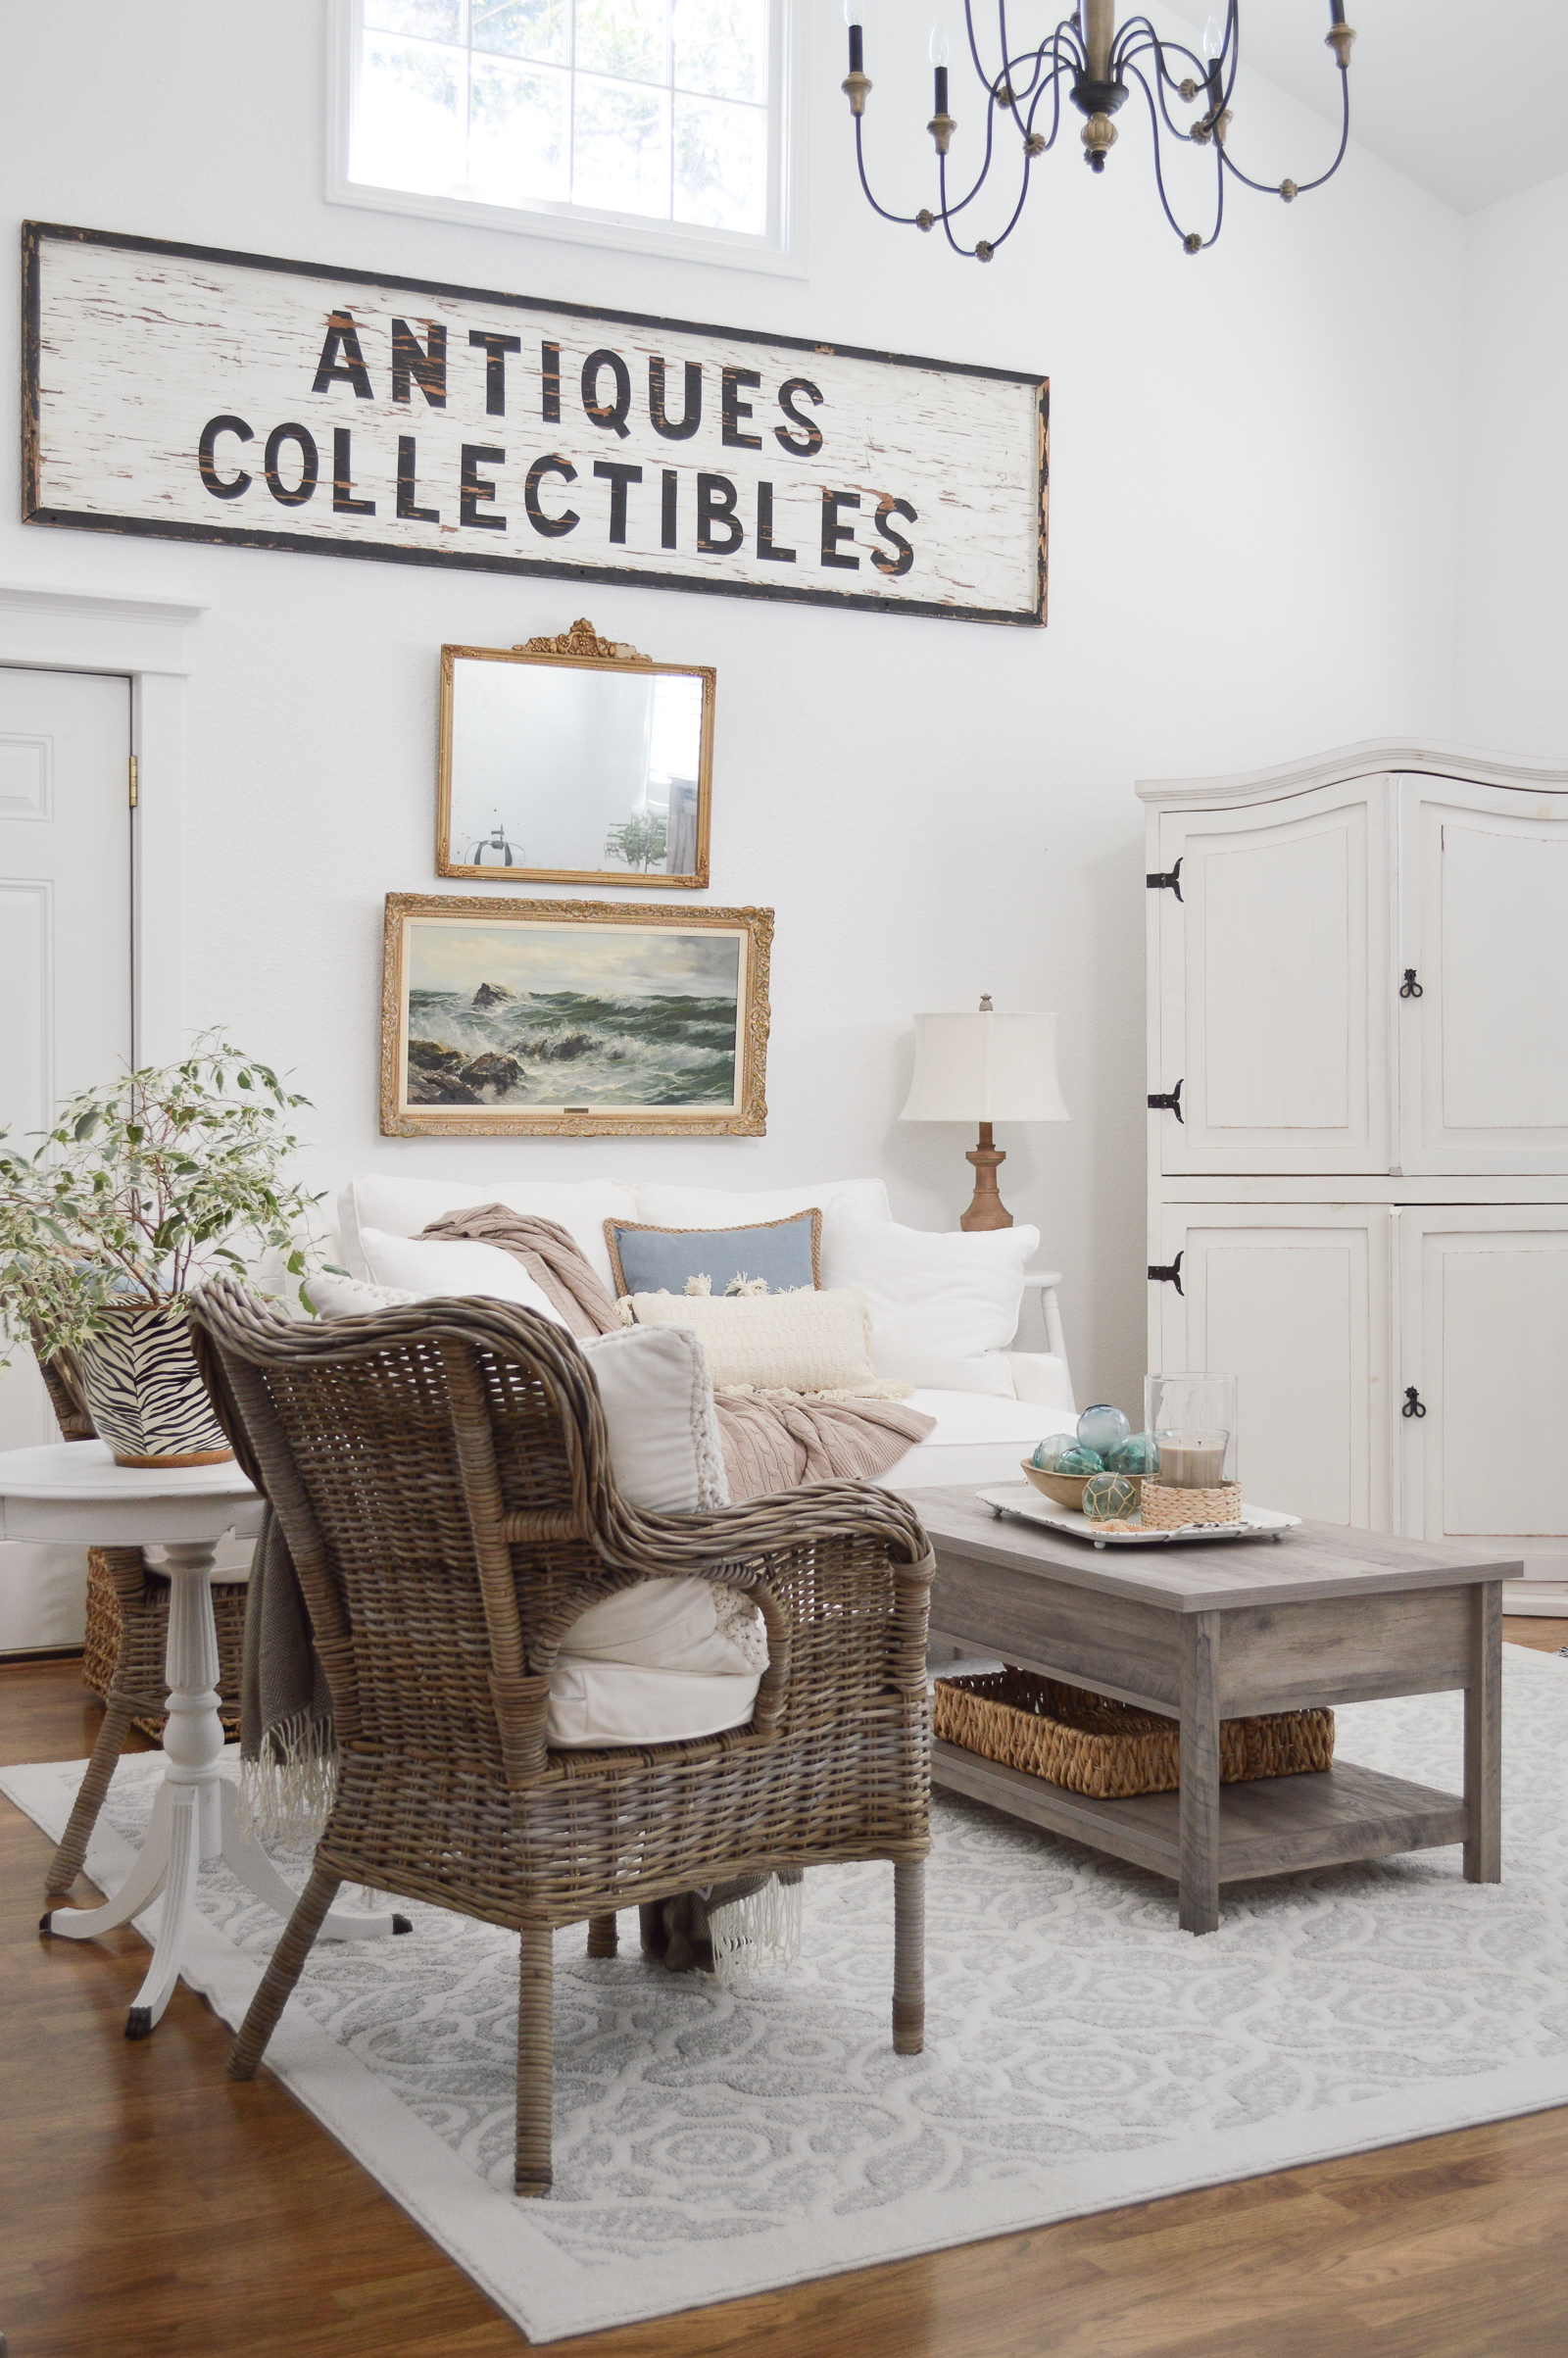 New Home Decorating Tips and Ideas - Fox Hollow Cottage